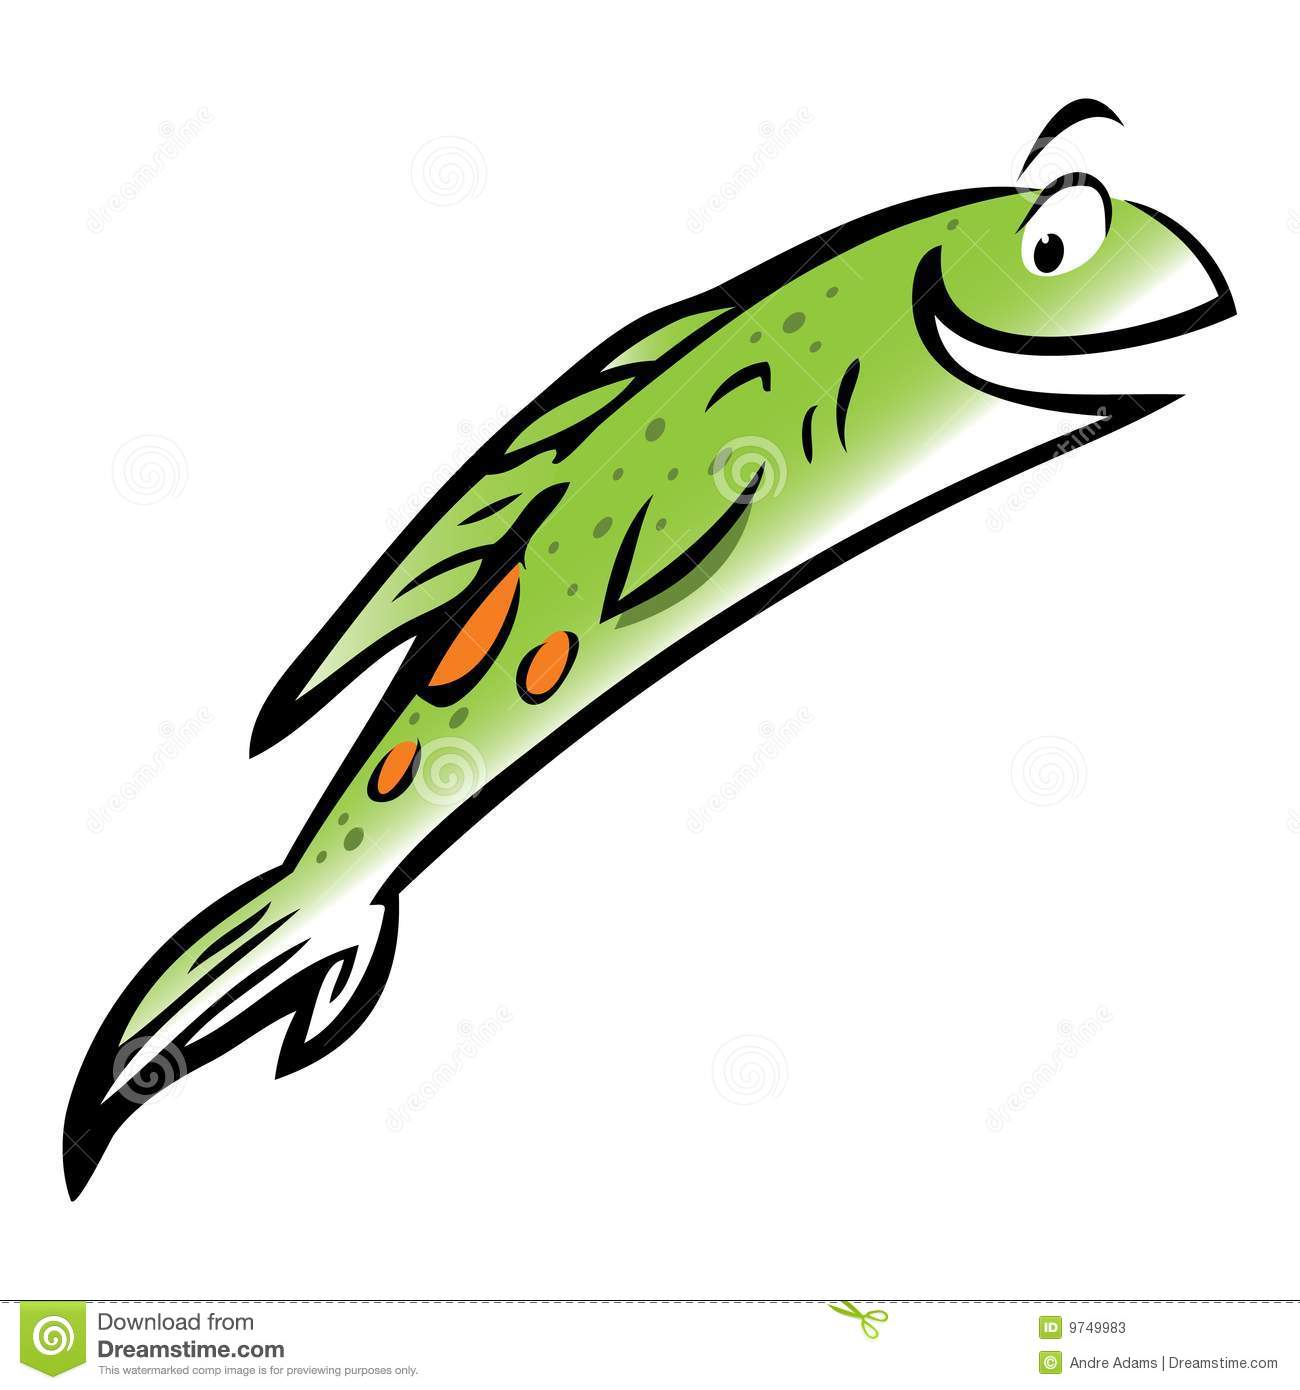 Salmon clipart clipart suggest for Salmon fish images